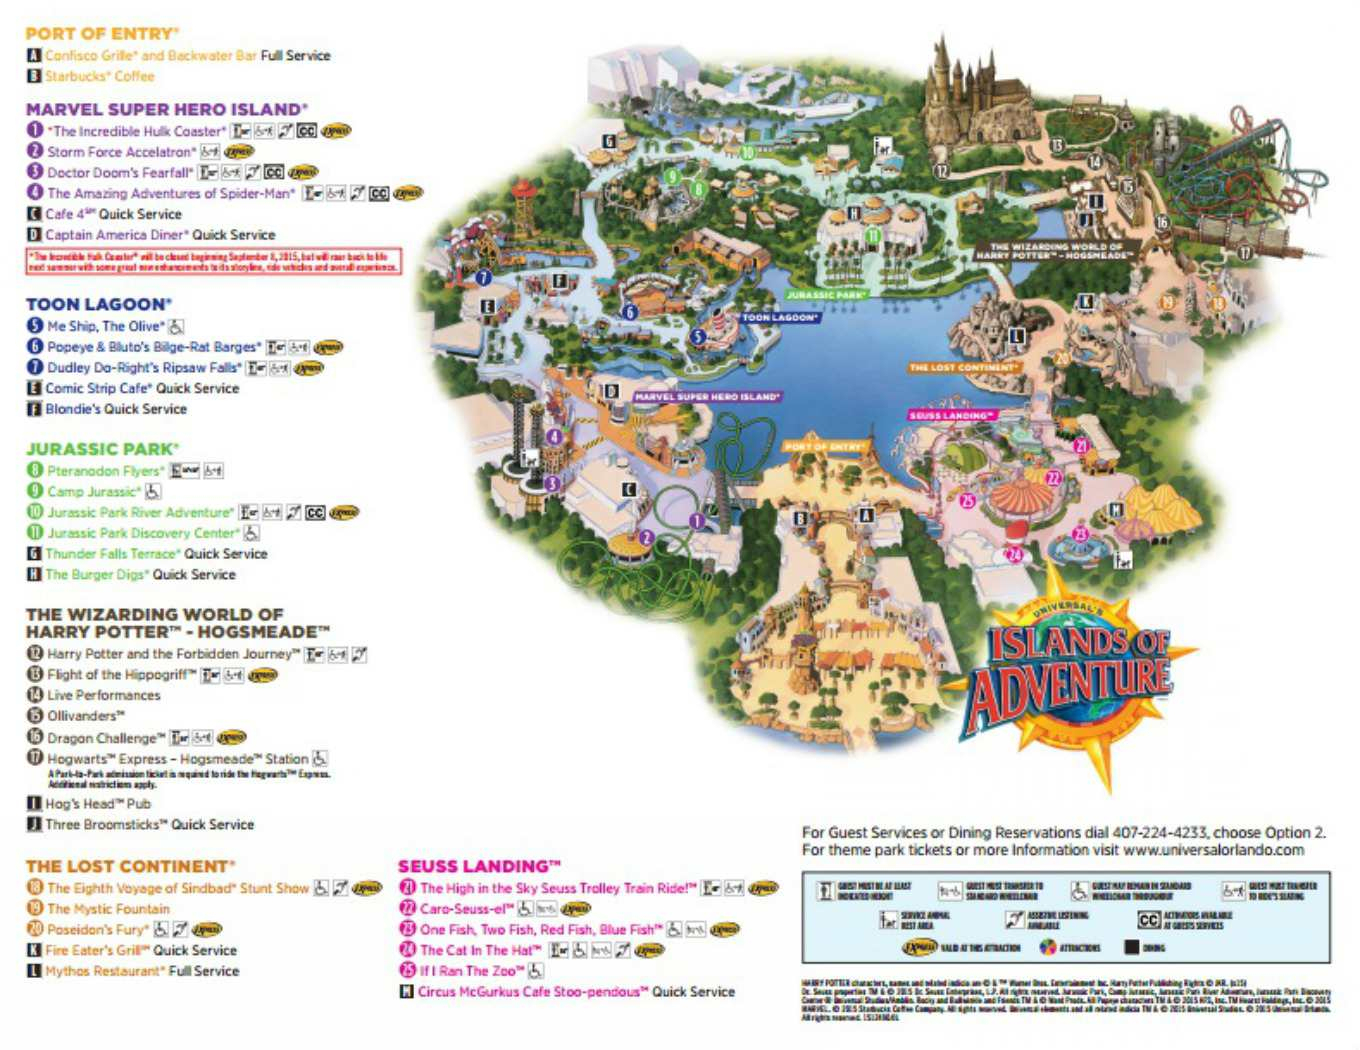 Maps Of Universal Orlando Resort's Parks And Hotels - Universal Parks Florida Map